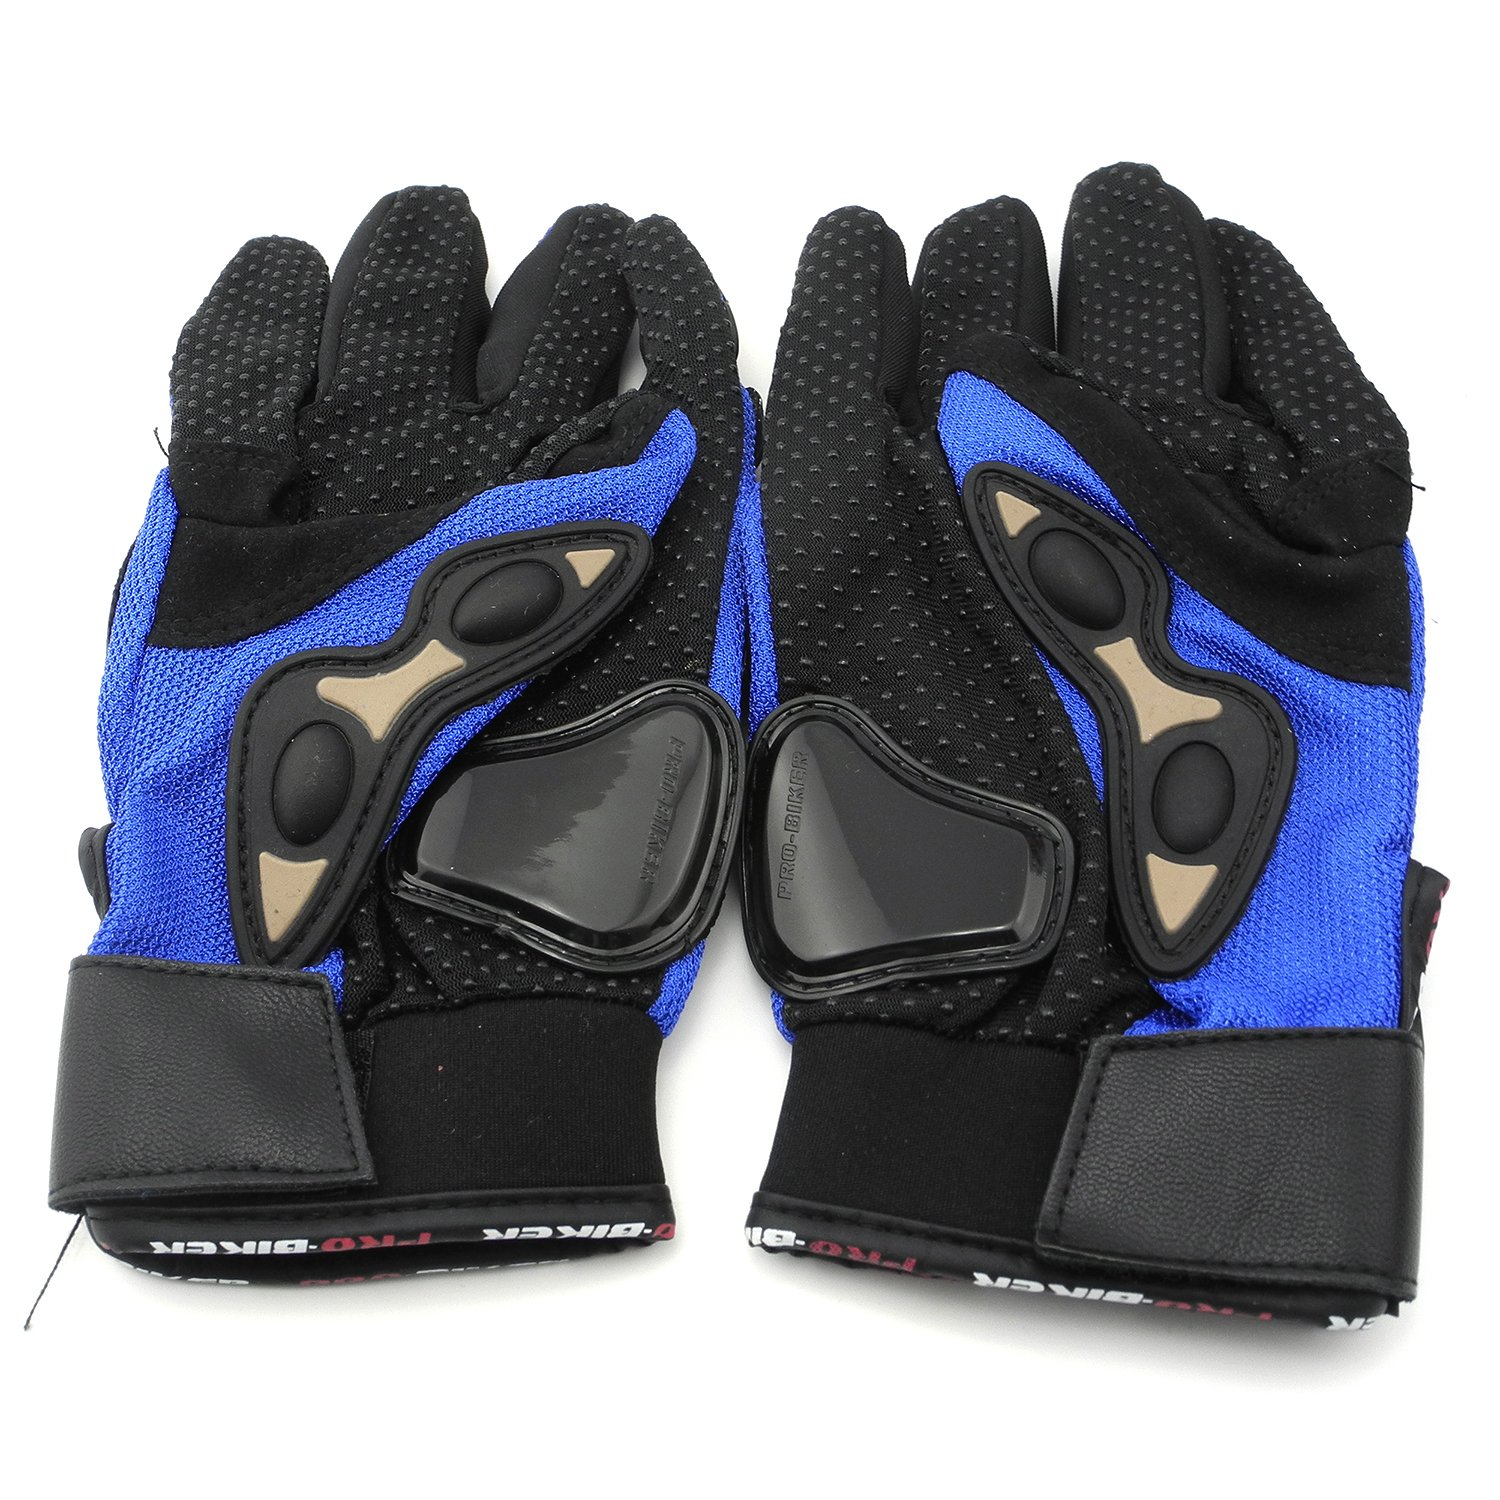 Blue Size XL iNewcow Sports Bicycle Motorcycle Racing Cross-Country Protective Gloves 1 Pair